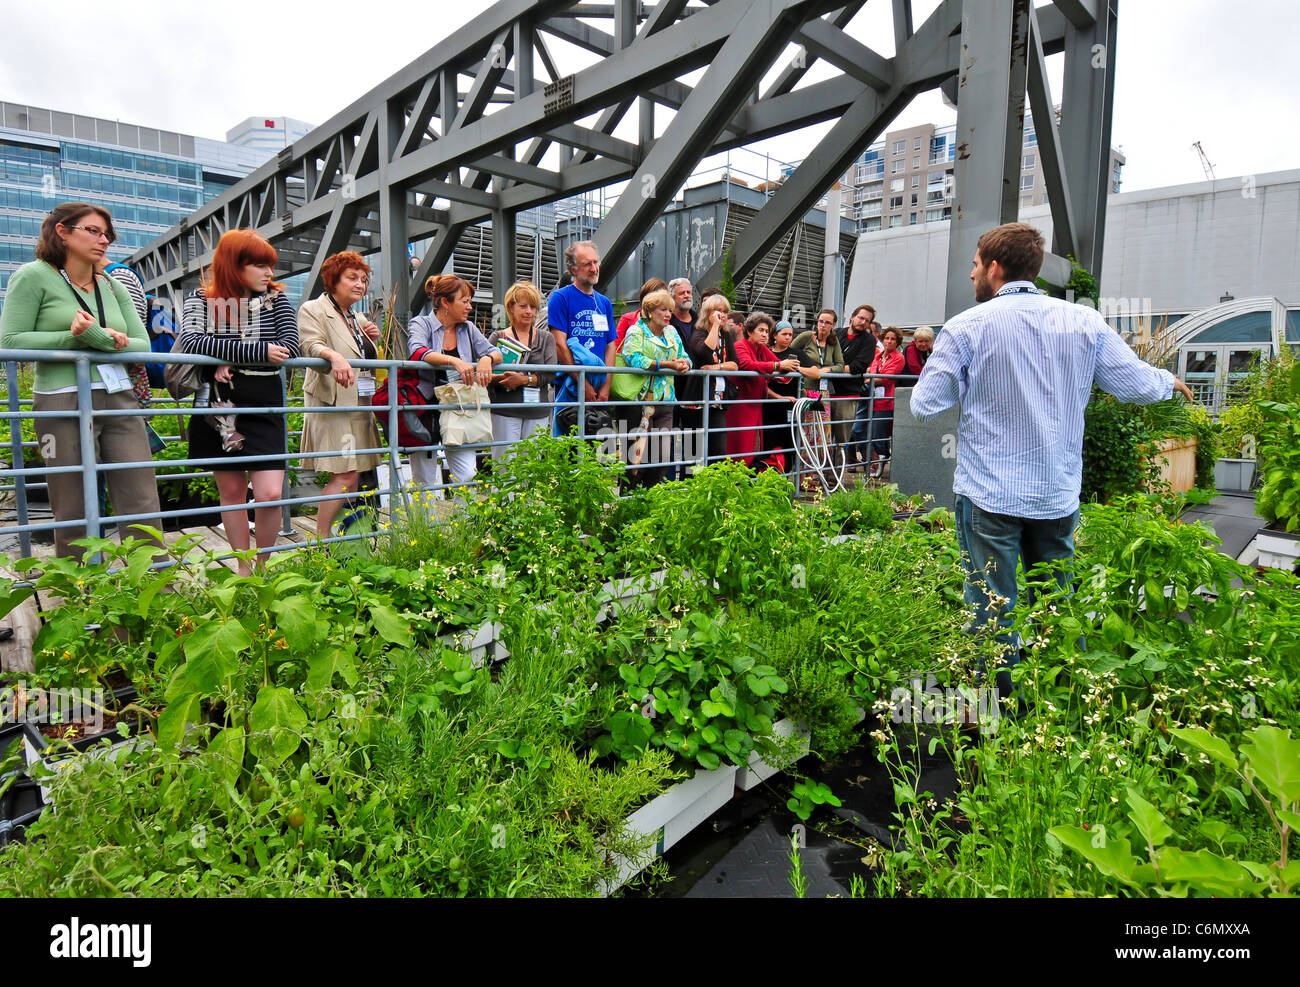 Guided educational tour to explain the benefits of the green rooftops on the green roof of Palais des Congres Montreal - Stock Image